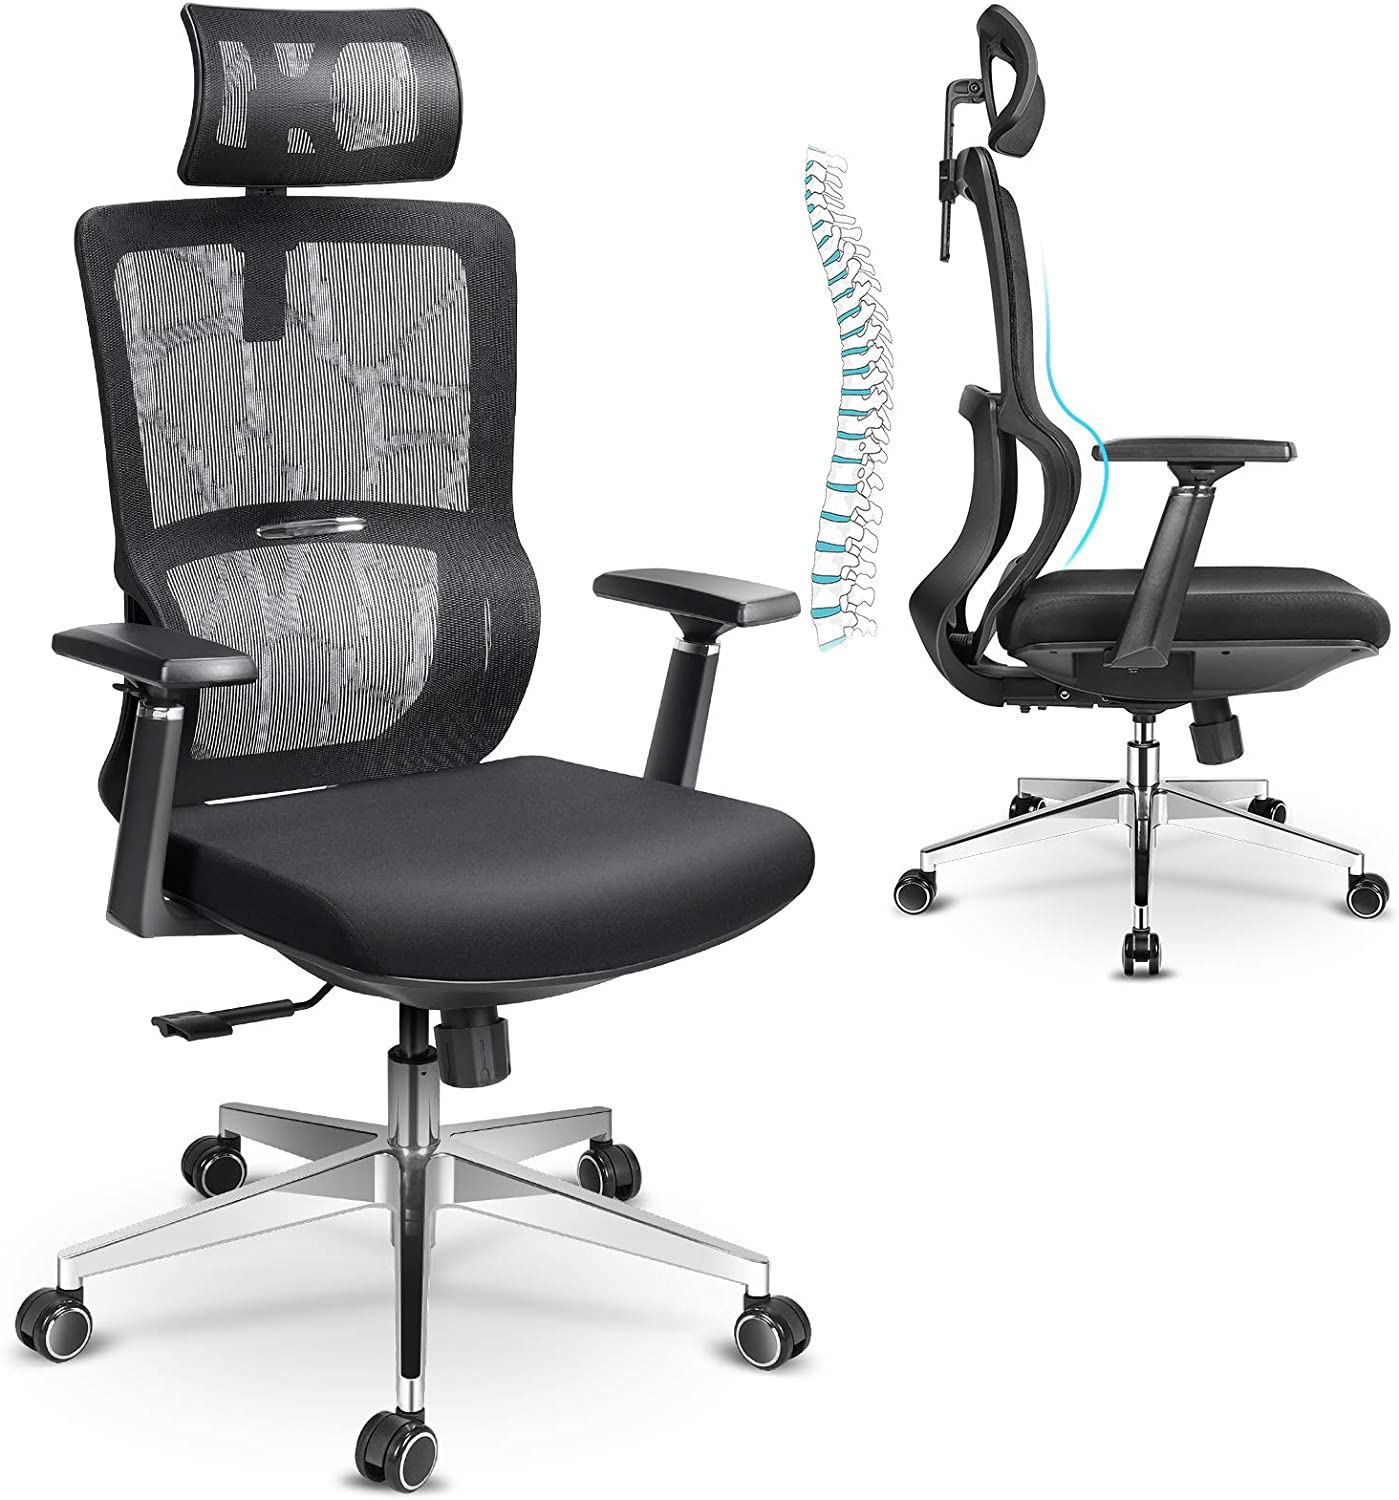 mfavour Ergonomic Office Chair, Mesh Chair with 3D Armrest and Adjustable Headrest, High Back Office Chair with Breathable Mesh and Lumbar Support, Home Office Desk Chairs with Thick Seat Cushion